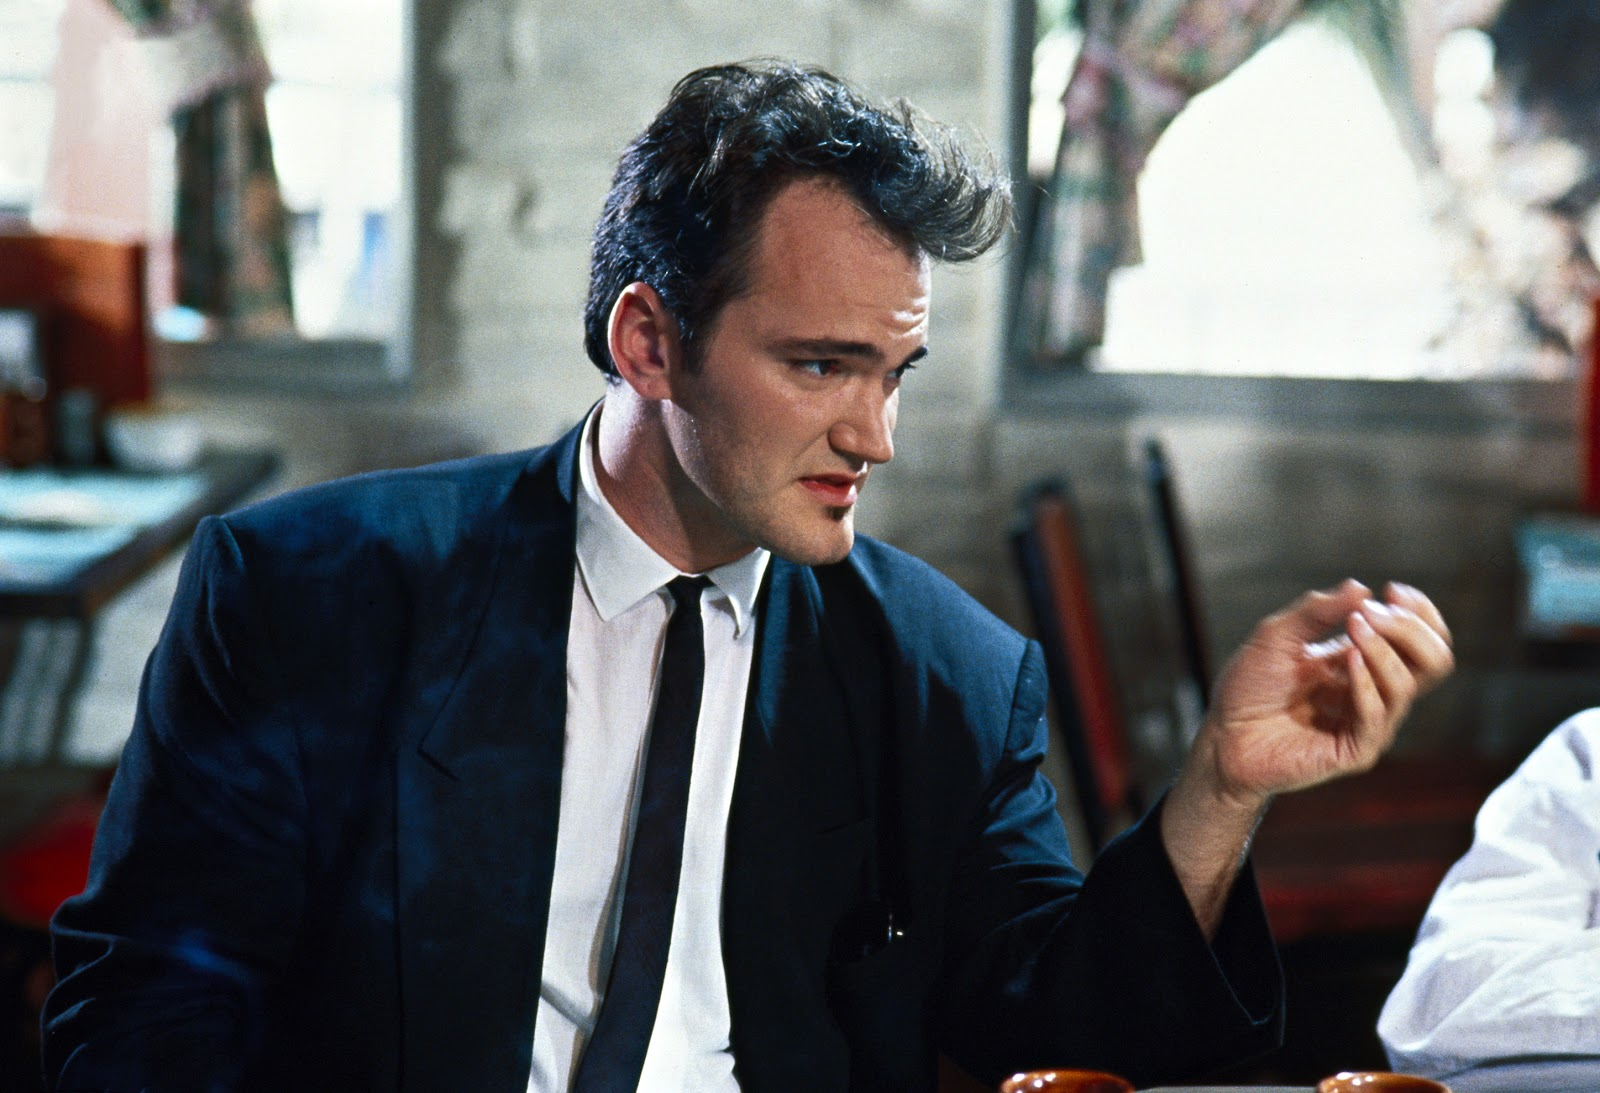 a review of reservoir dogs by quentin tarantino Reservoir dogs is a video game based on the quentin tarantino film of the same namereleased in 2006, it garnered mostly mediocre reviews and caused minor controversies for its violence.